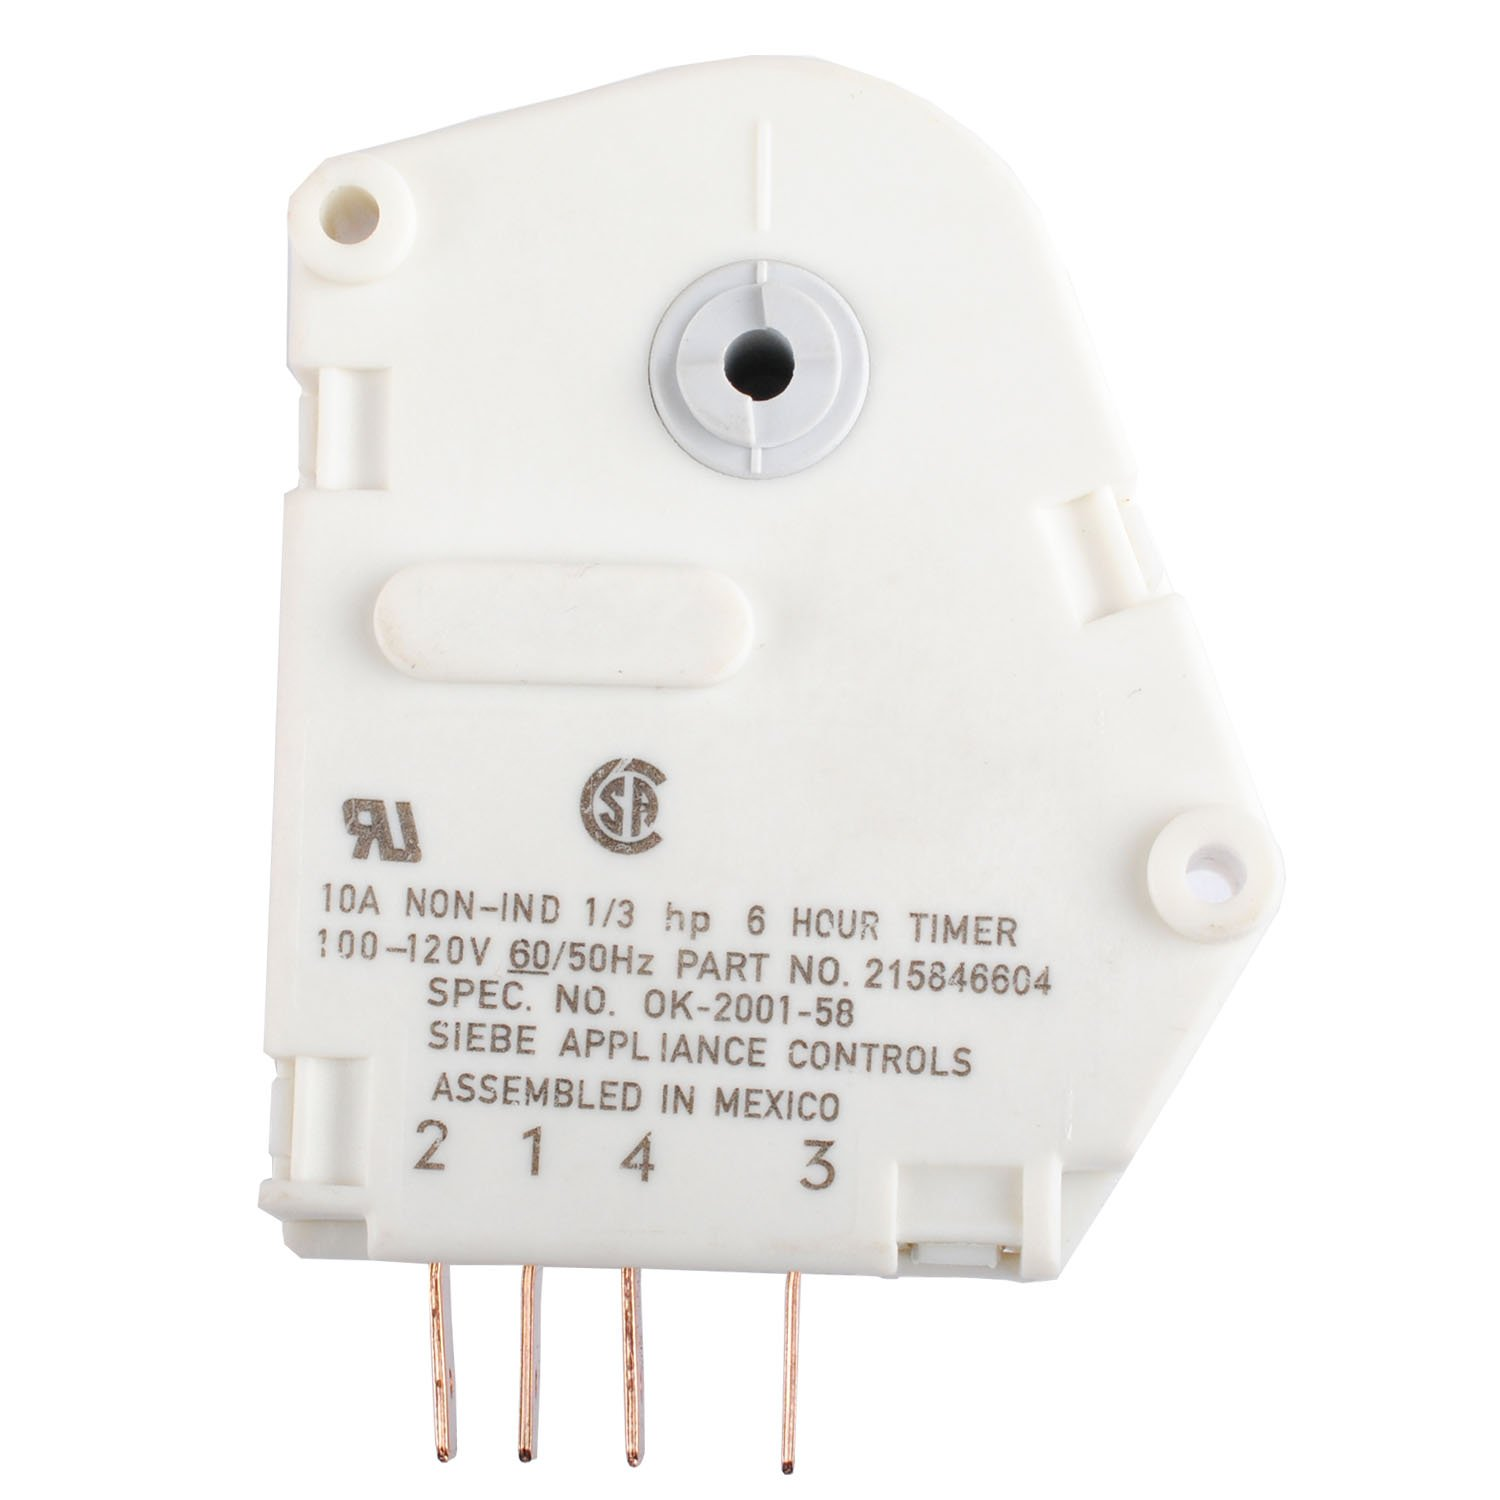 120V 6 Hour 21 Minutes AP2592907 Defrost Timer for Frigidaire 215846604 Fits Refrigerators and Freezers